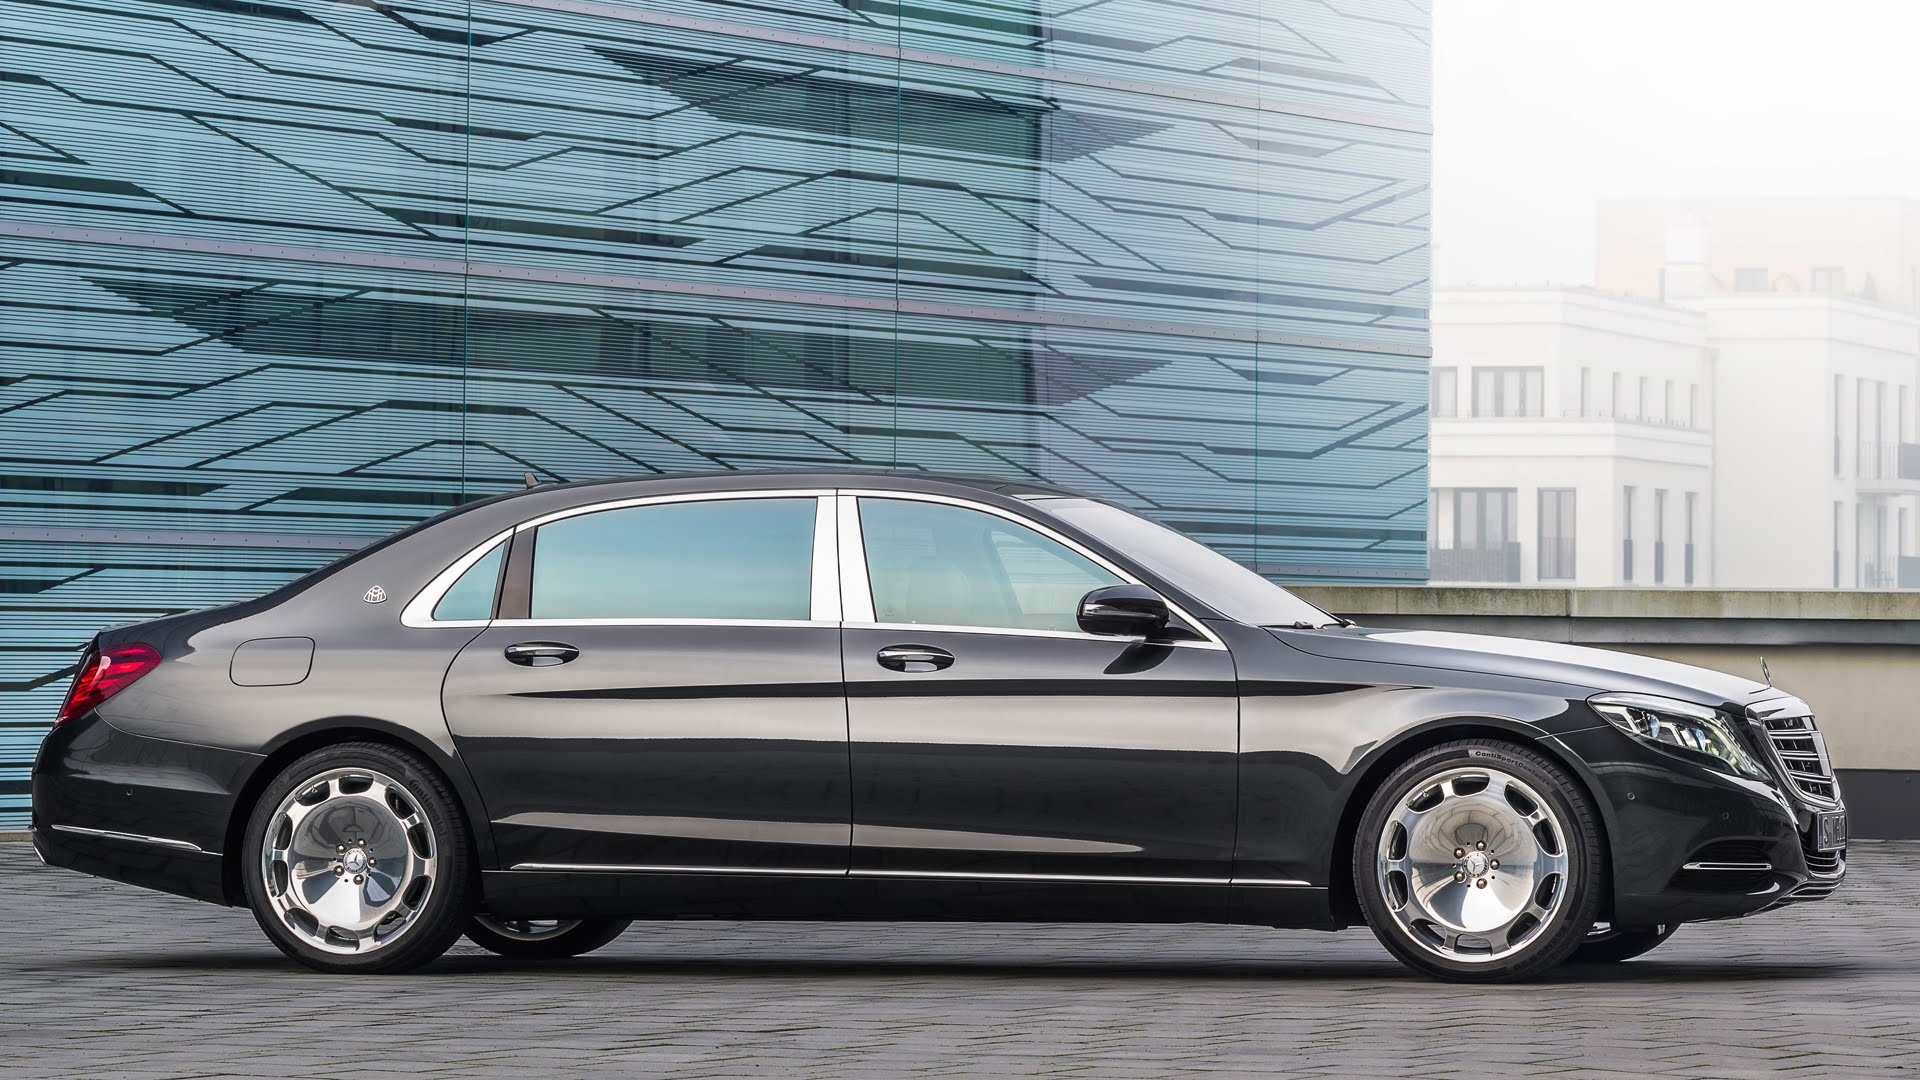 weststar unveils new mercedes maybach s class. Black Bedroom Furniture Sets. Home Design Ideas